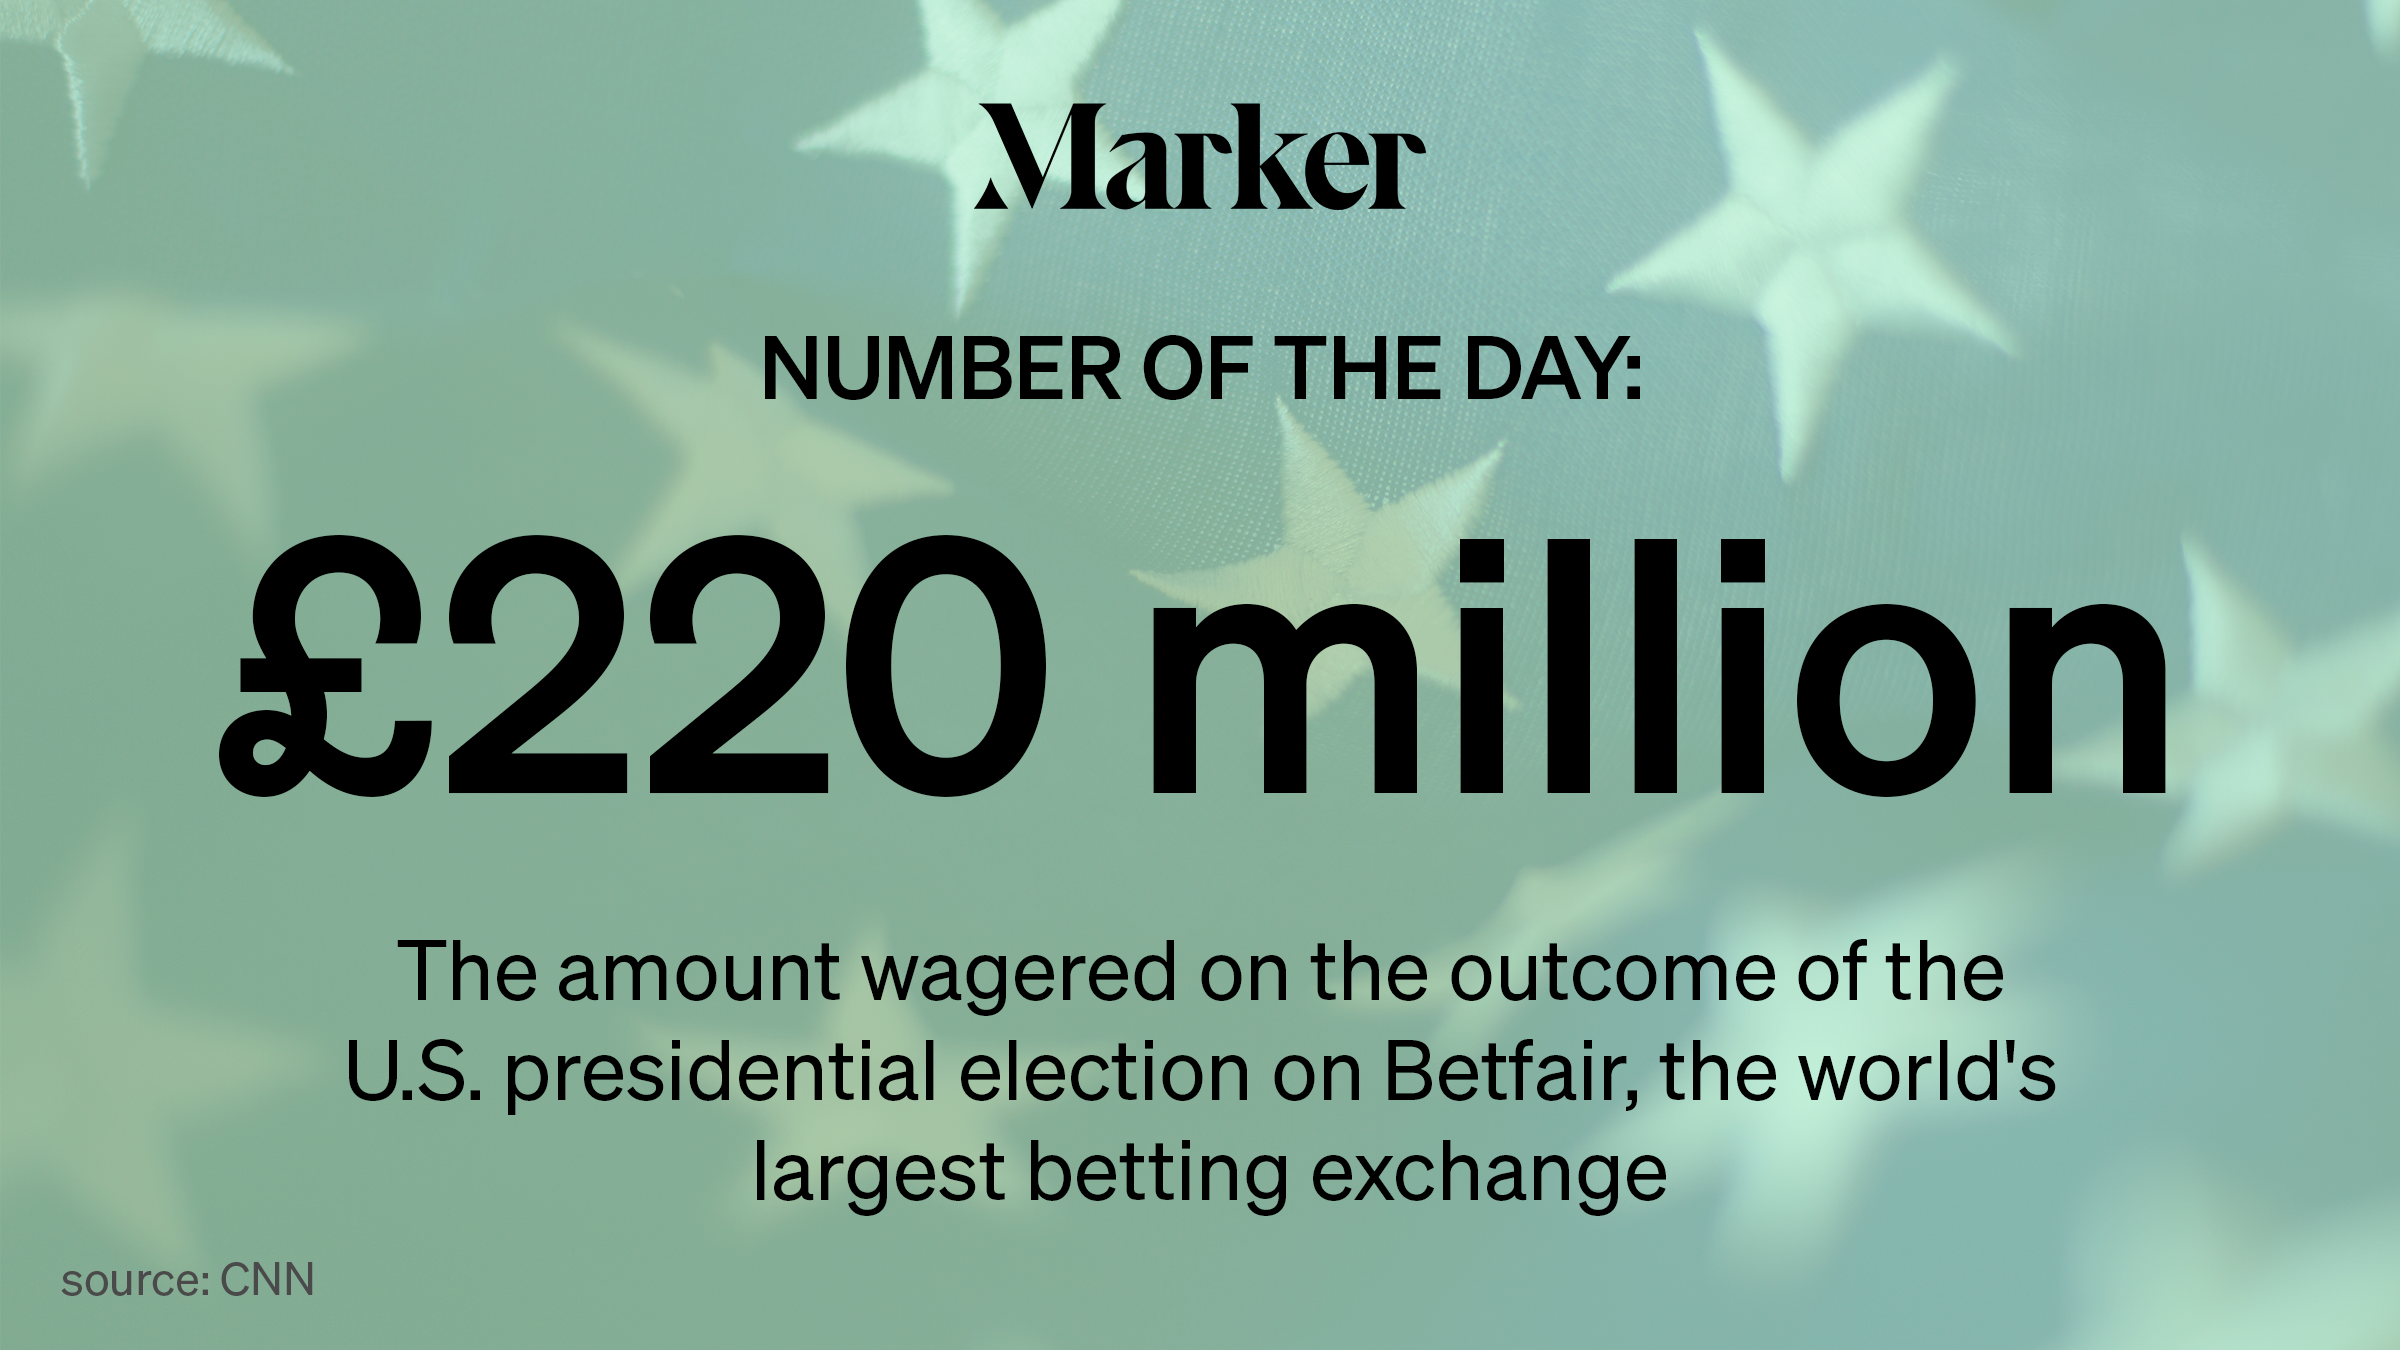 Bet on outcome of presidential election 1324 betting system for roulette